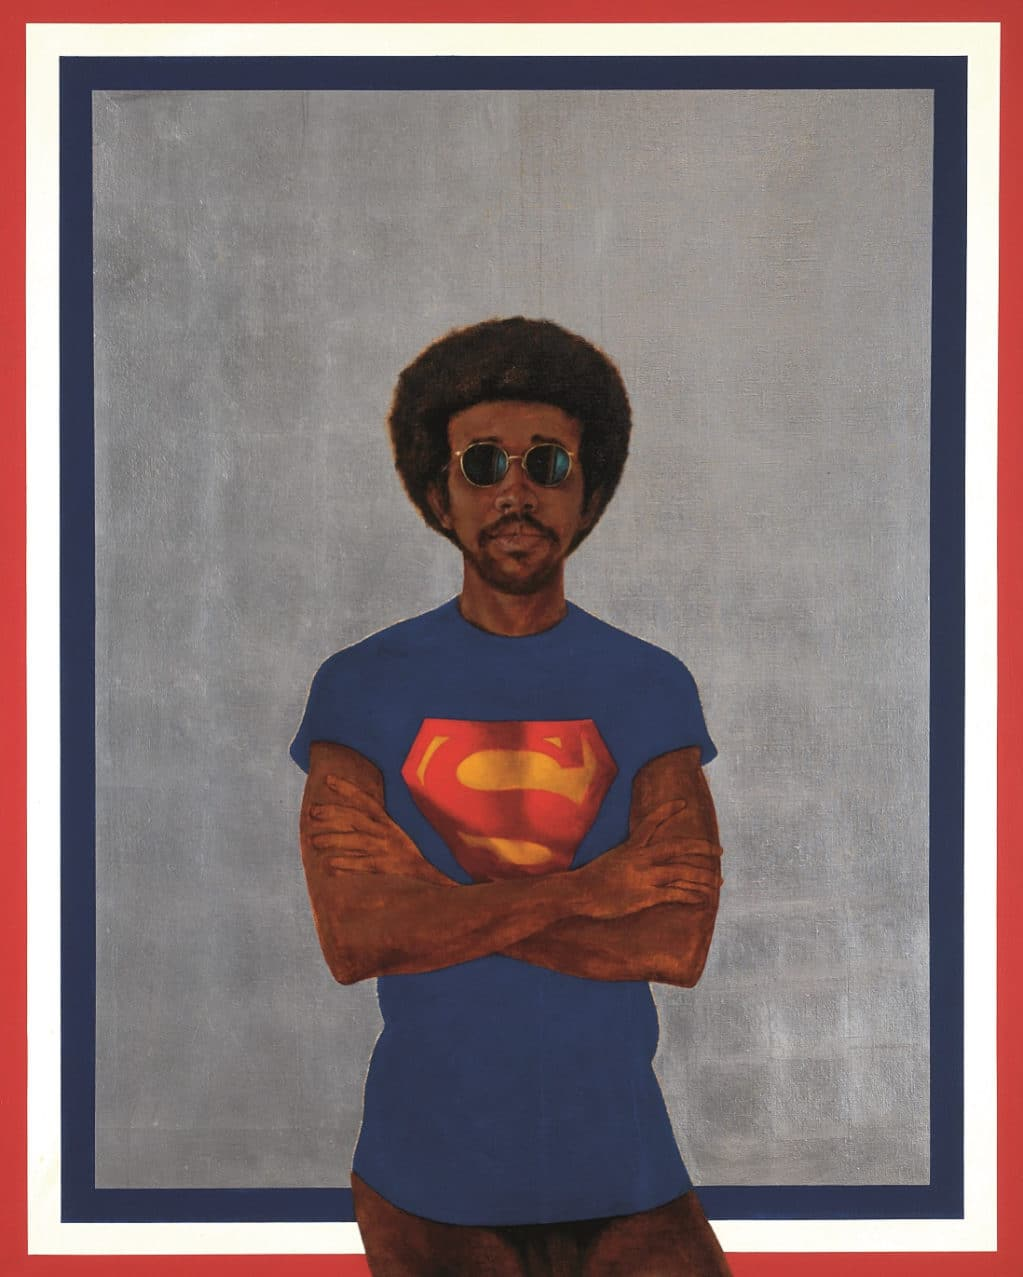 Barkley Hendricks, Superman